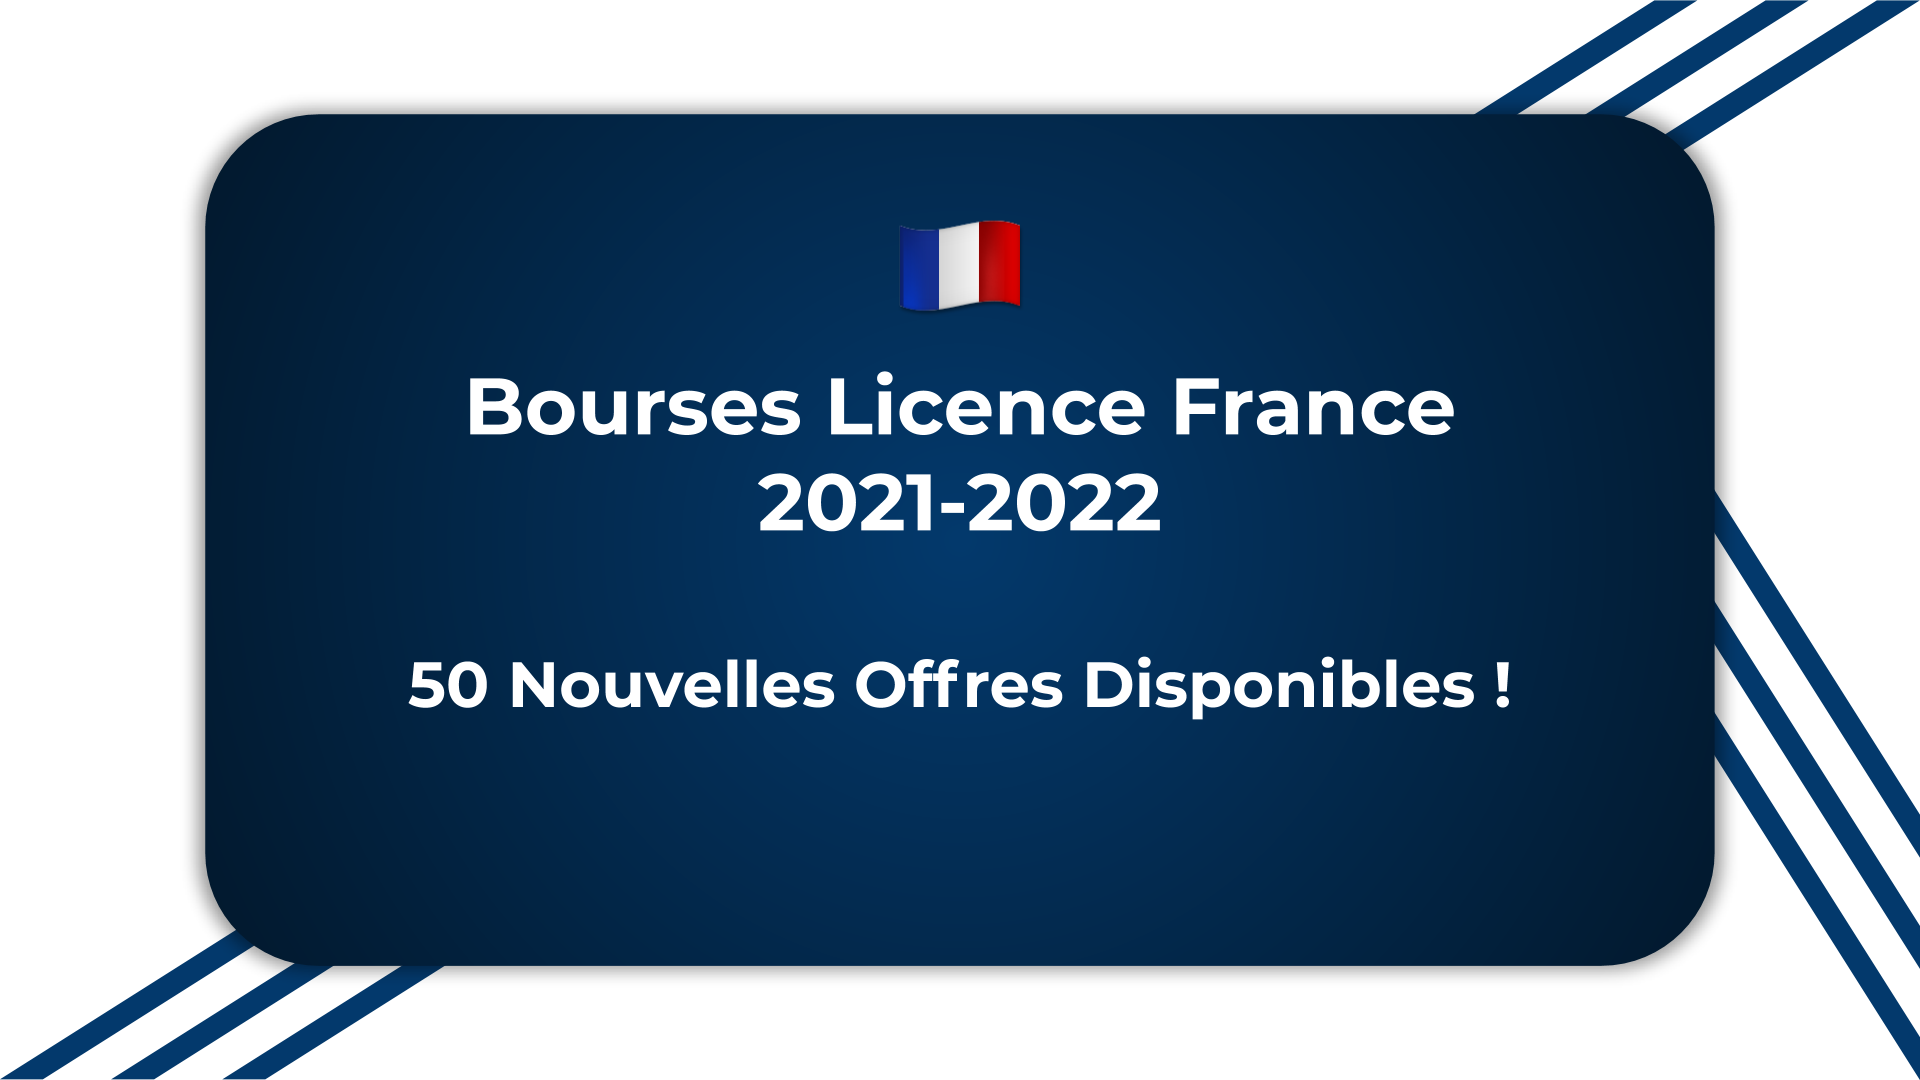 Bourses Licence France